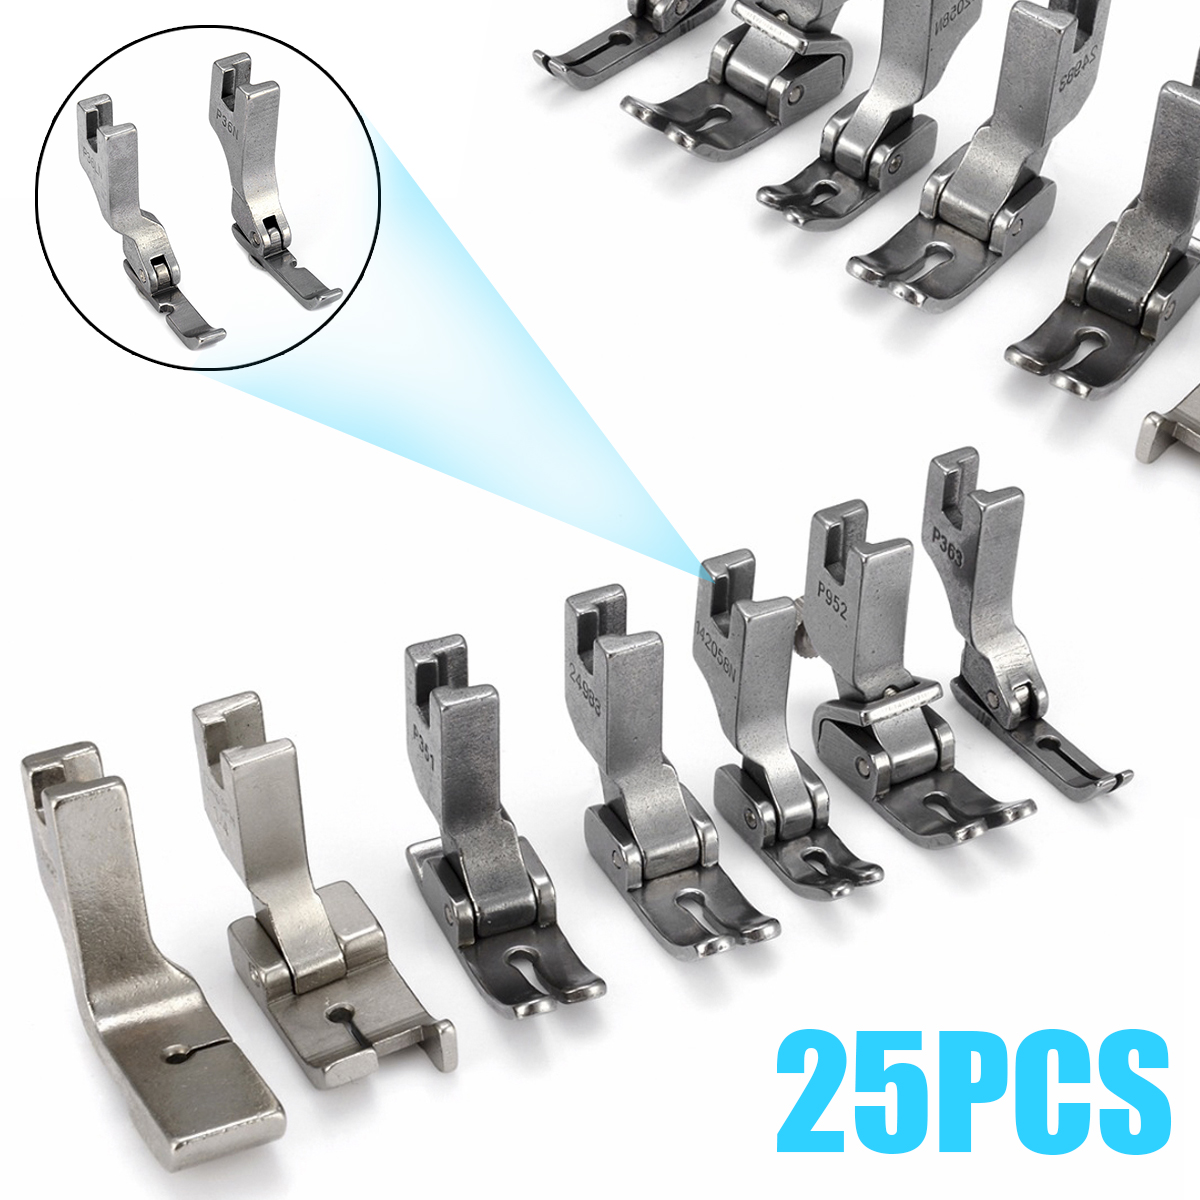 25Pcs Silver Presser Foot Sewing Machine High-Shank Presser Feet Set For JUKI DDL-5550 8500 8700 Industrial Sewing Machine